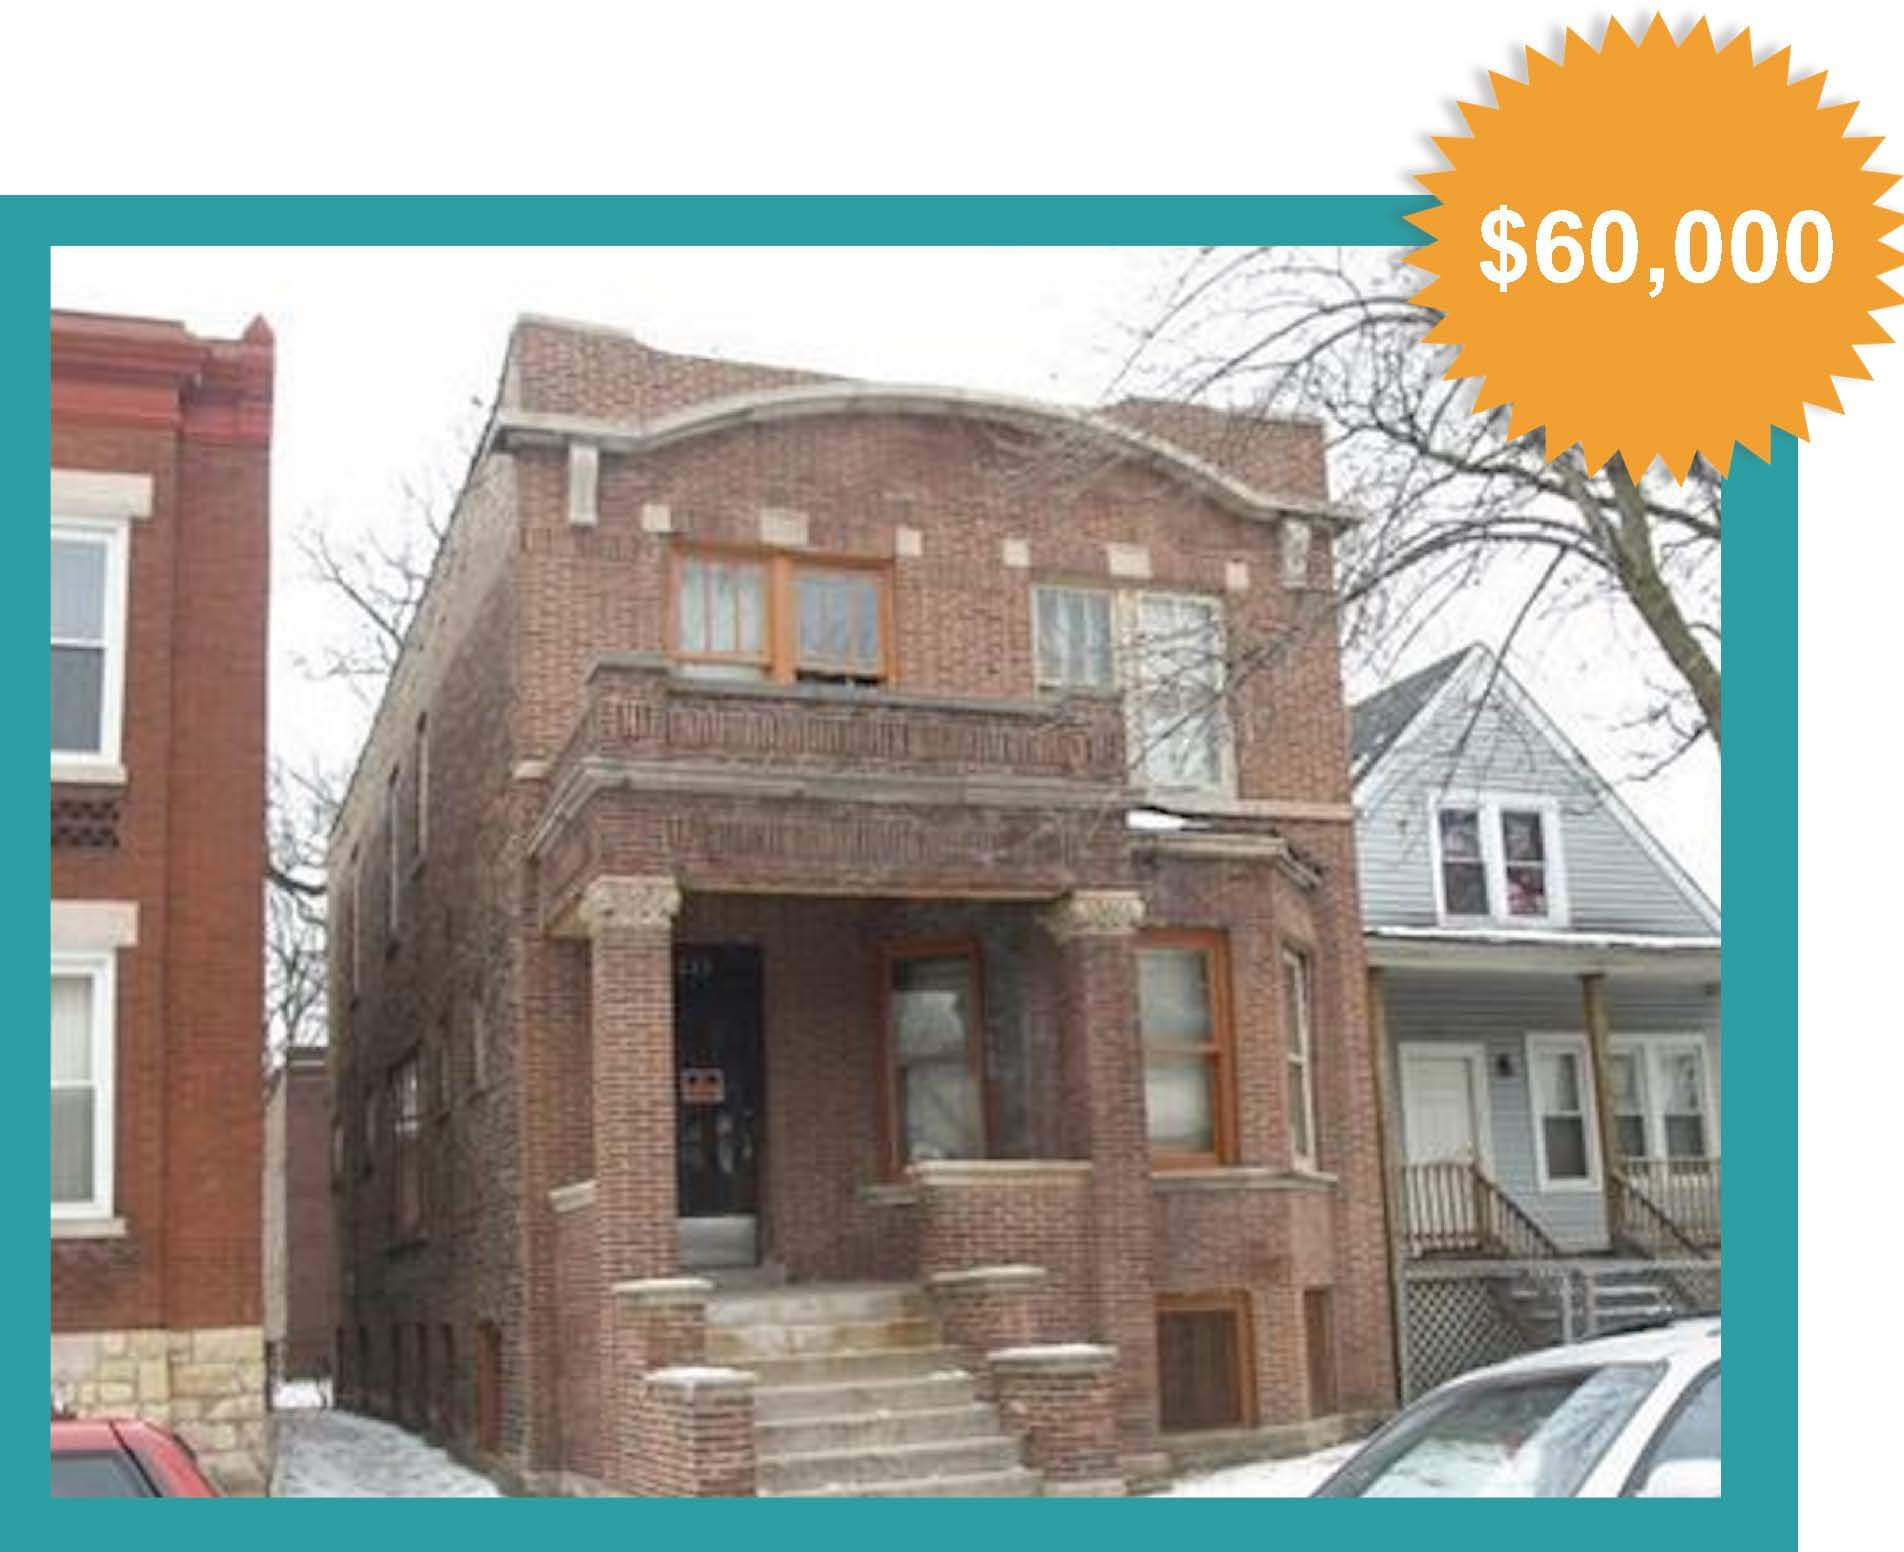 Chicago Buy to Let Investment Property 2